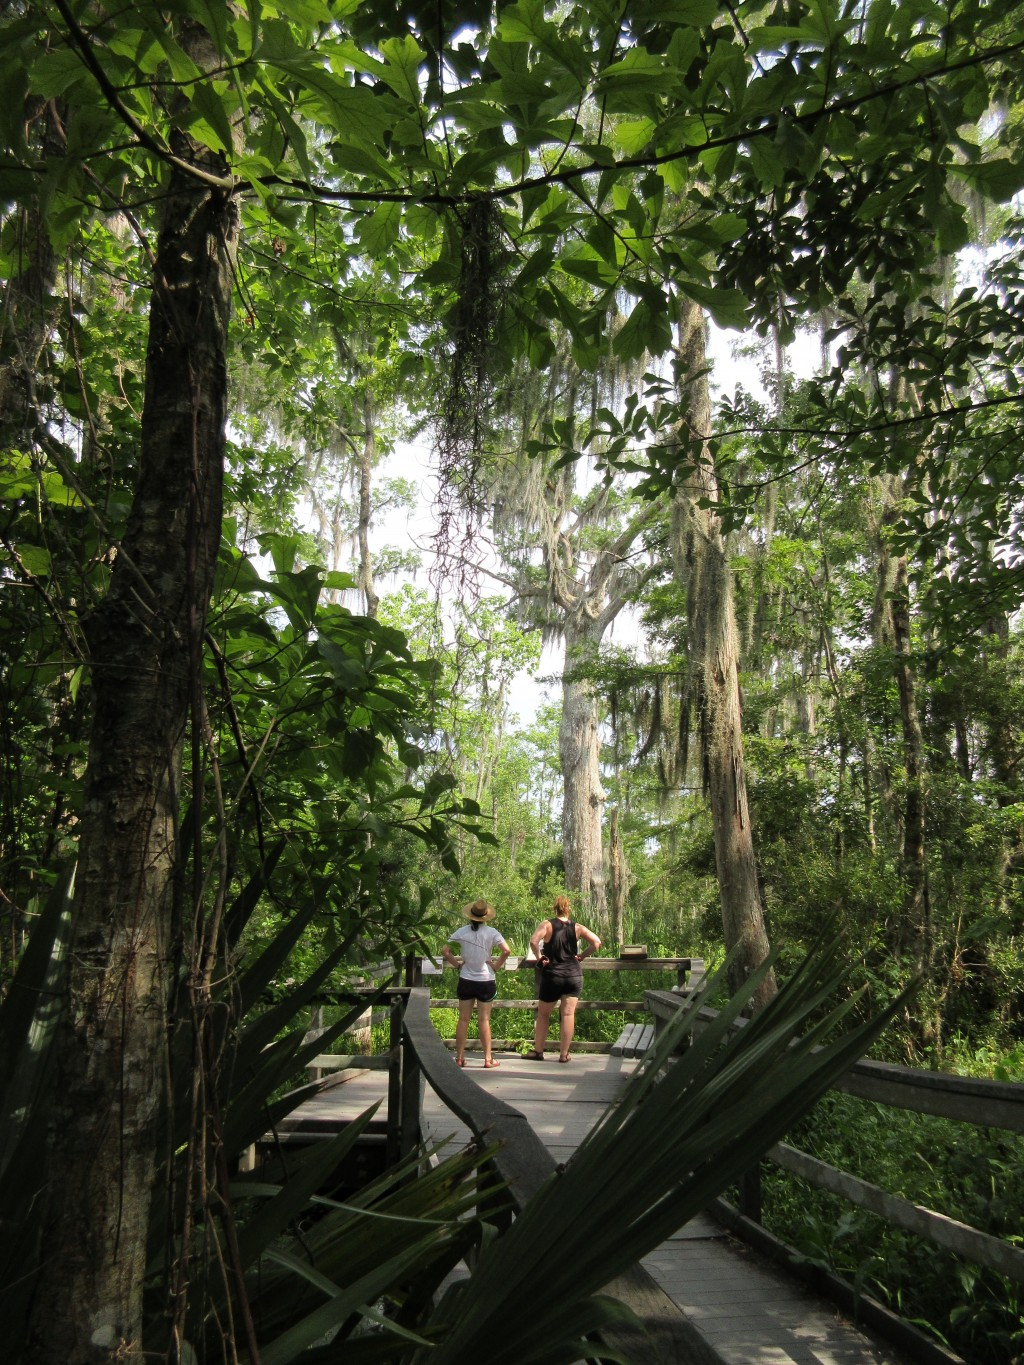 This June 3, 2018 photo shows visitors taking in the verdant landscape of woods and wetlands at the Barataria Preserve, part of Jean Lafitte National ...